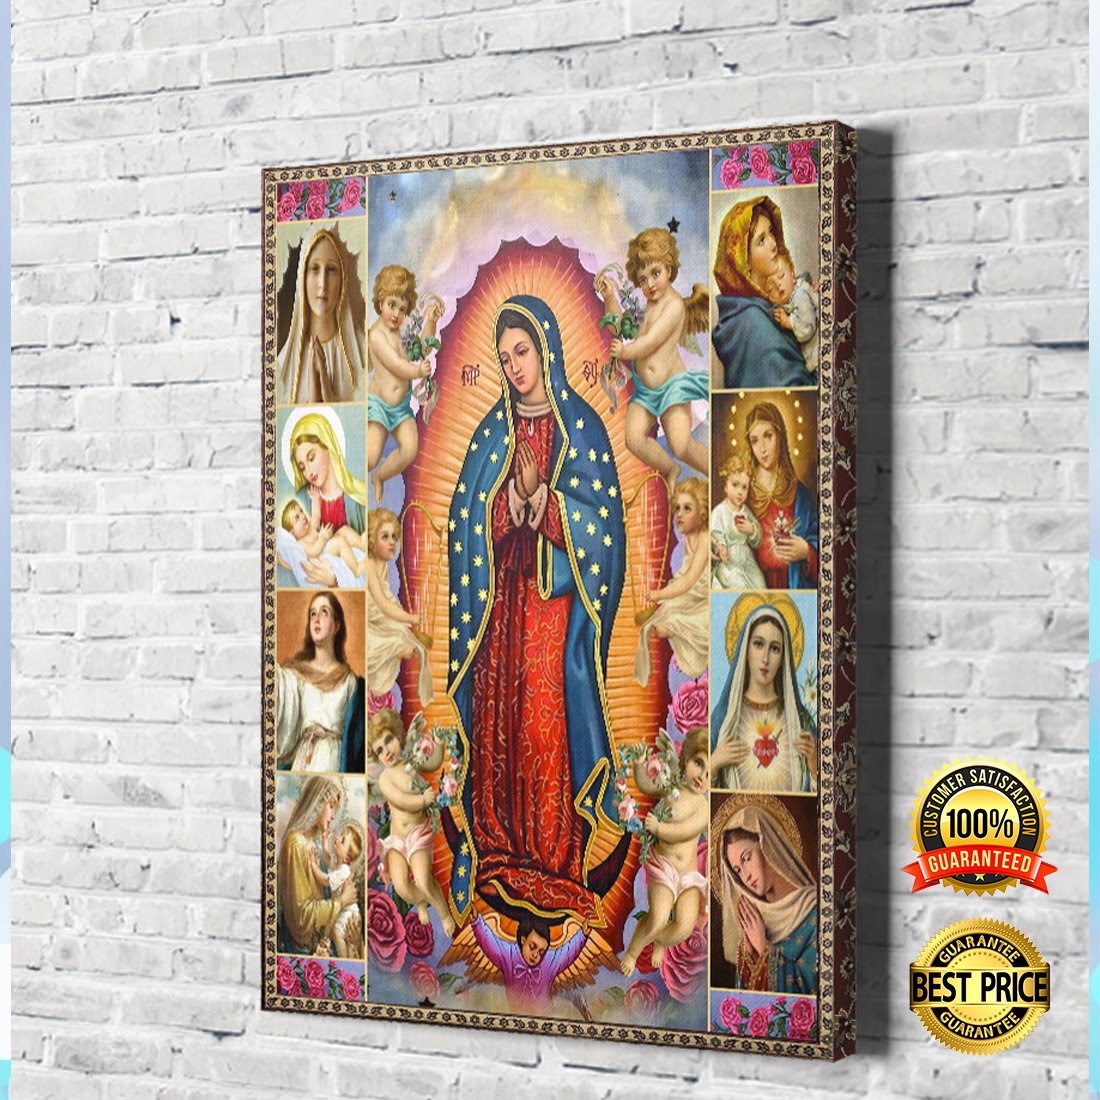 [HOT] OUR LADY OF GUADALUPE CANVAS